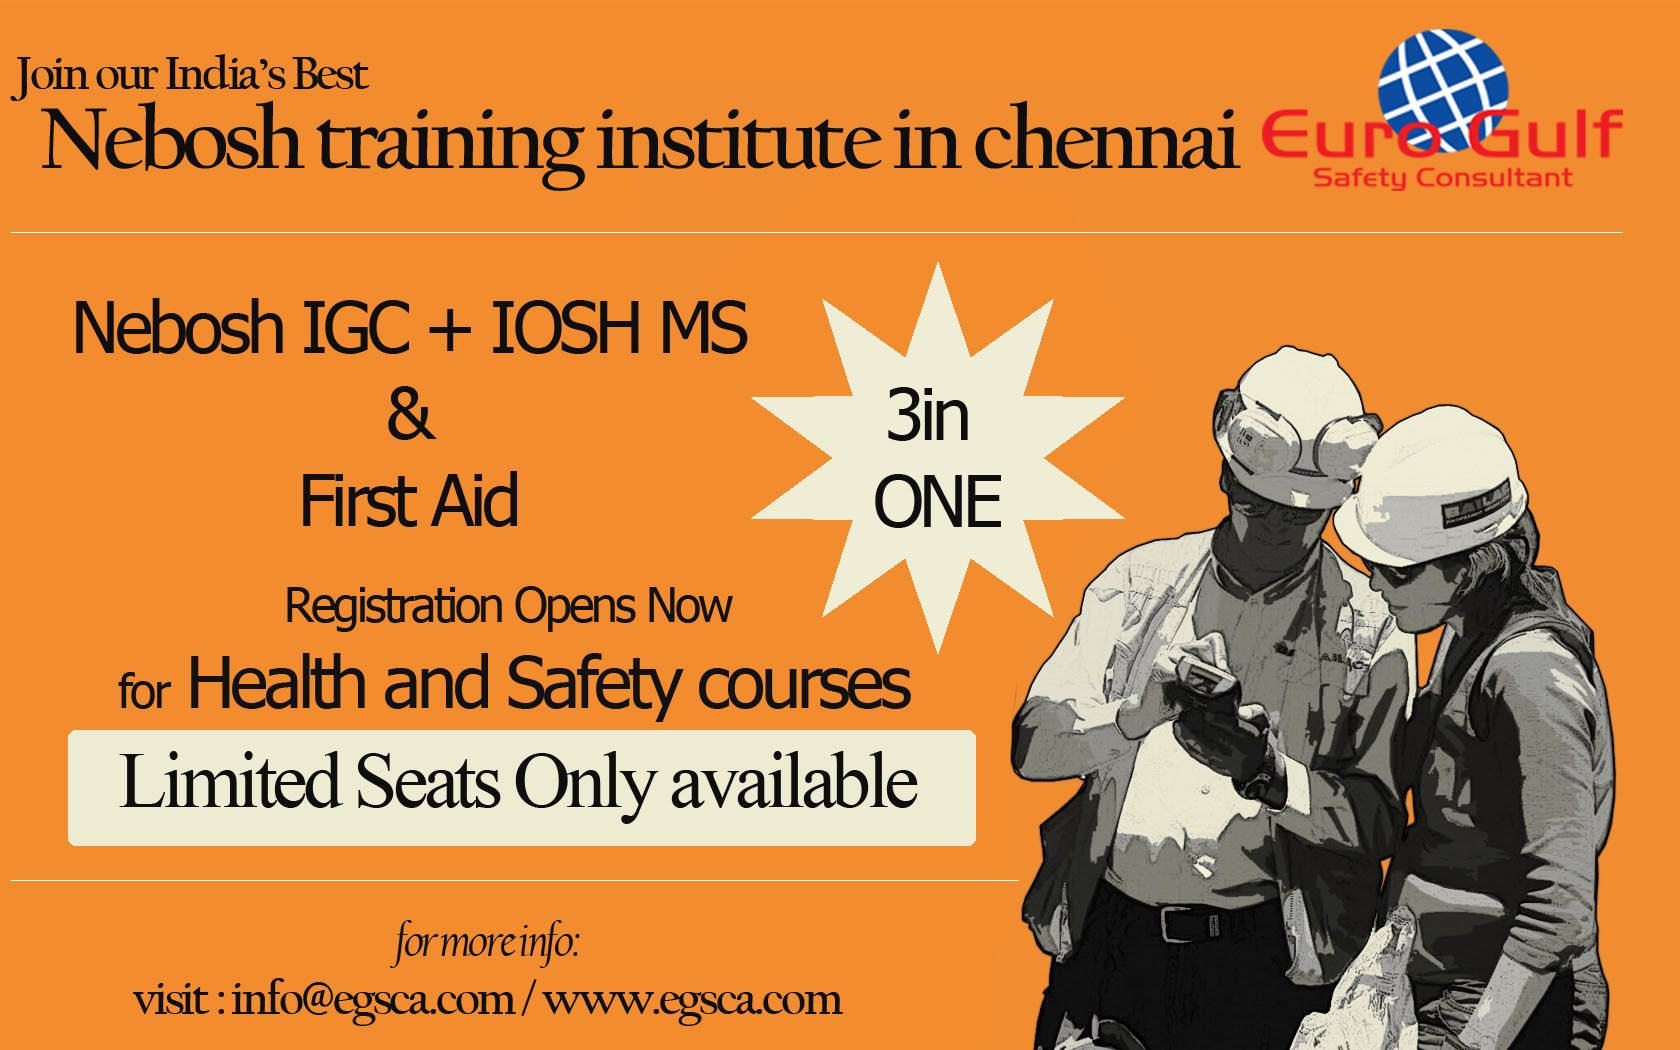 India's Best Nebosh training institute is in chennai